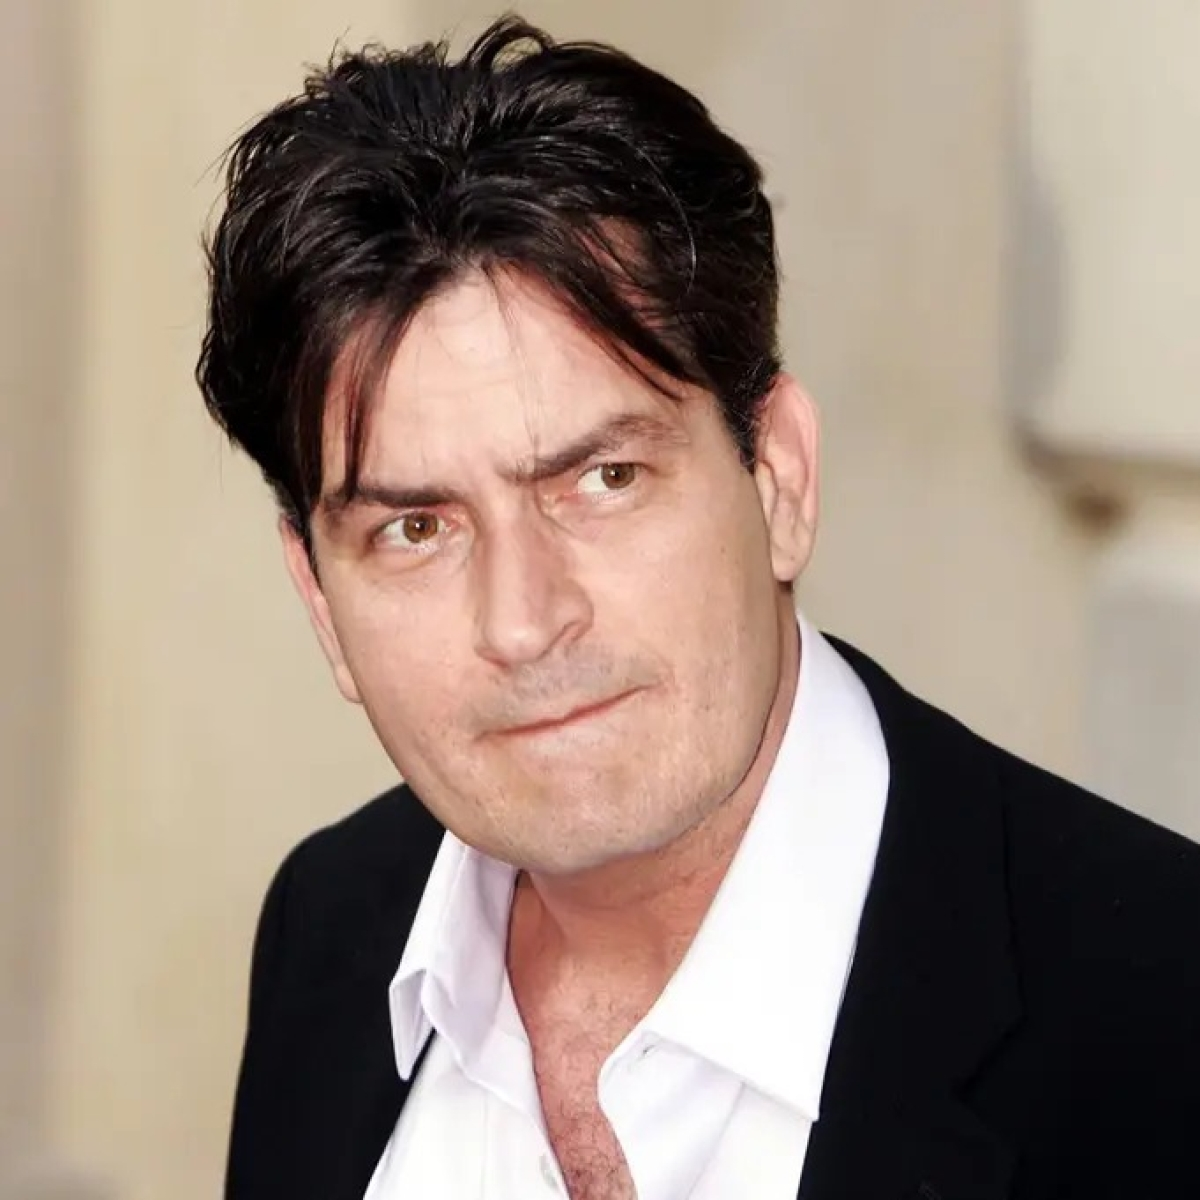 Charlie Sheen celebrates 1 year of not smoking cigarettes